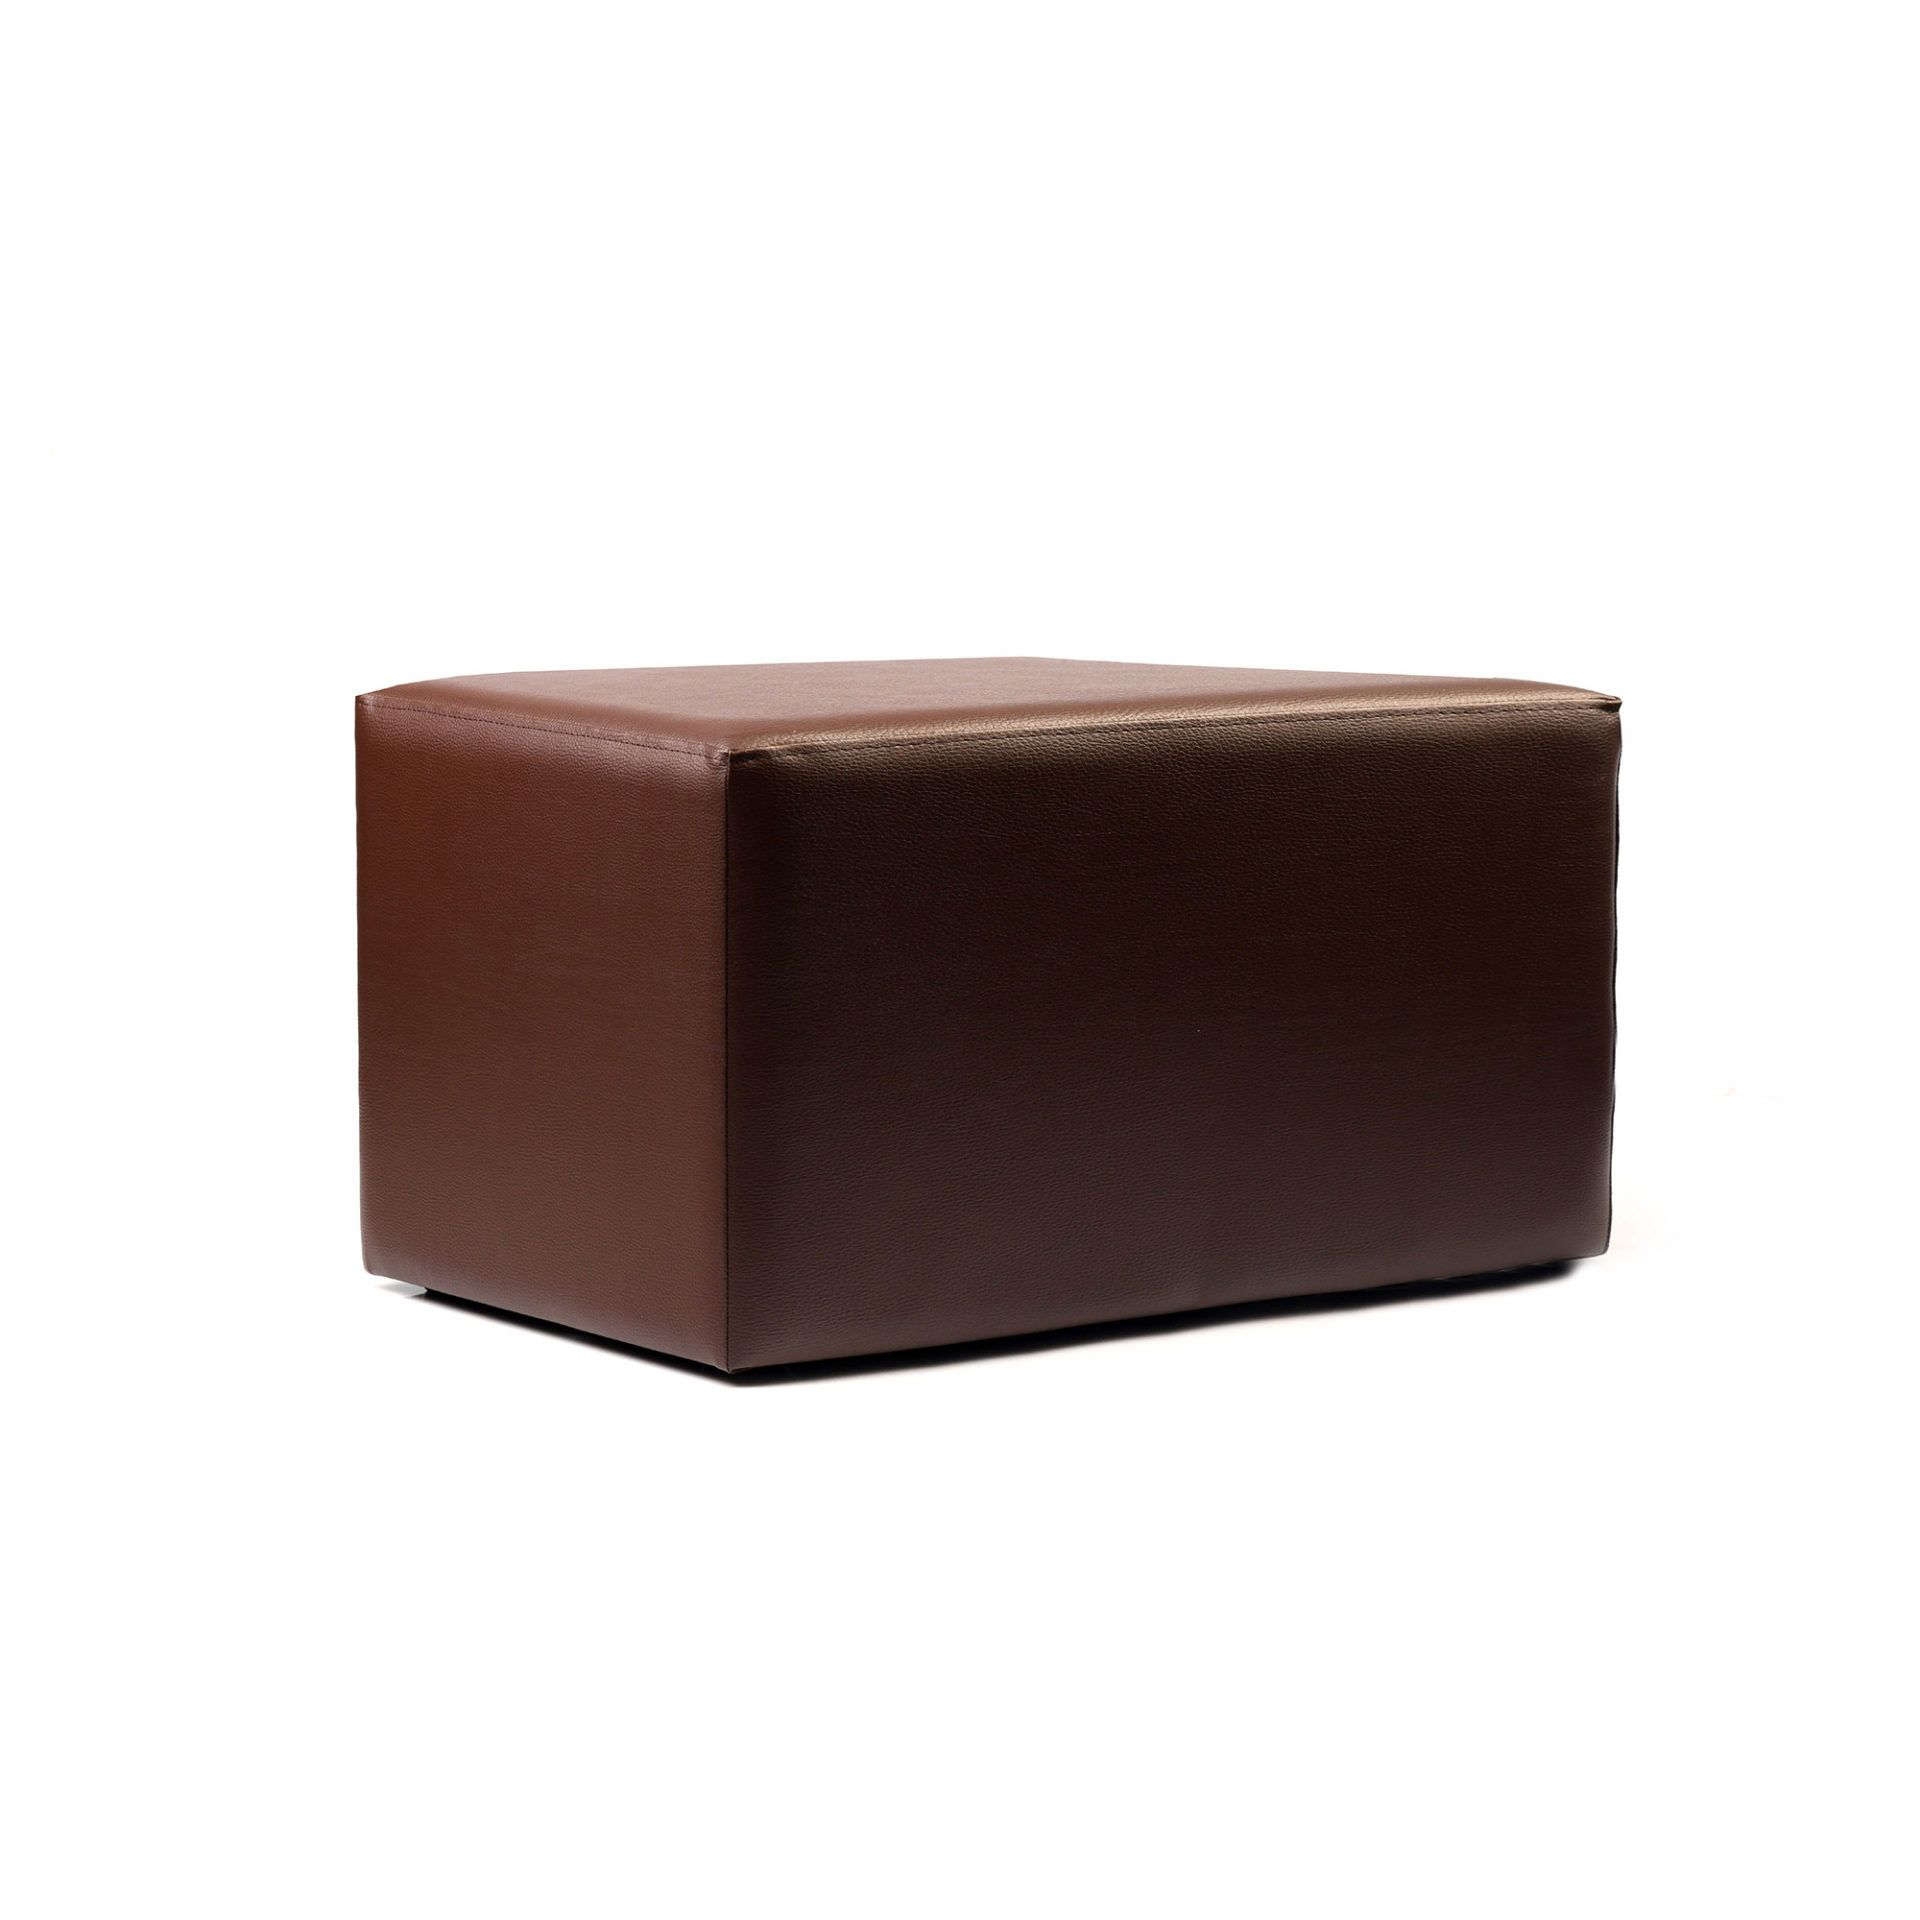 Ottoman Rectangle - Chocolate - Made In Europe